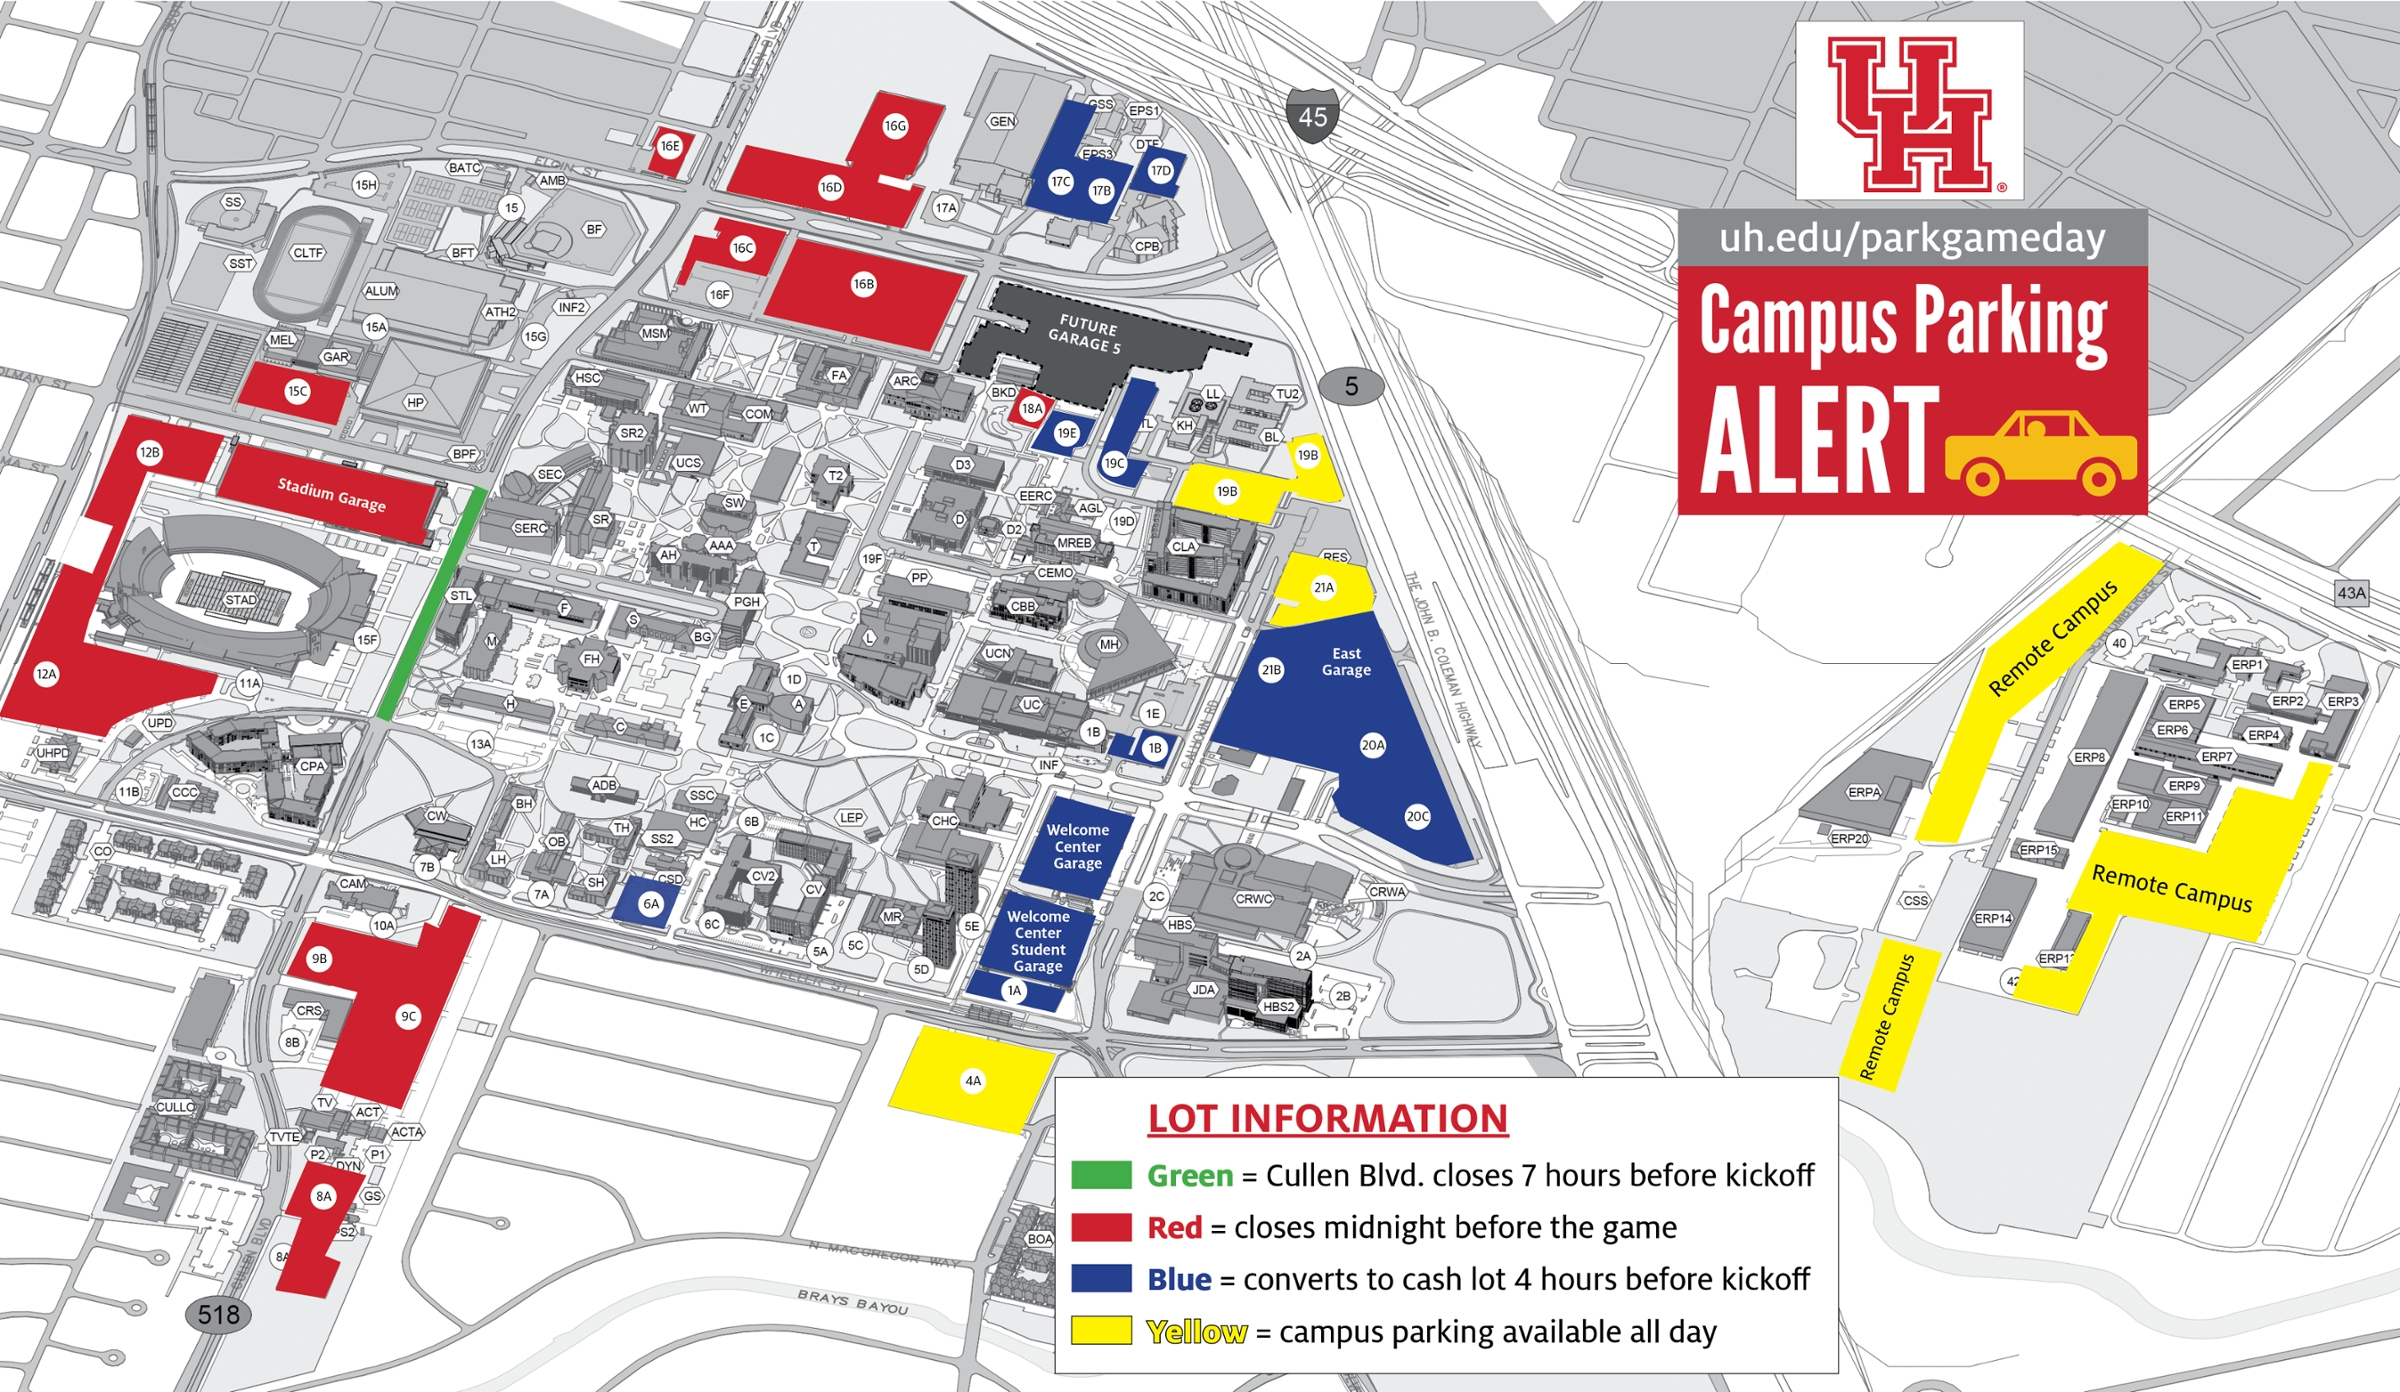 University Of Houston Parking Map Campus Parking on Game Day   University of Houston University Of Houston Parking Map